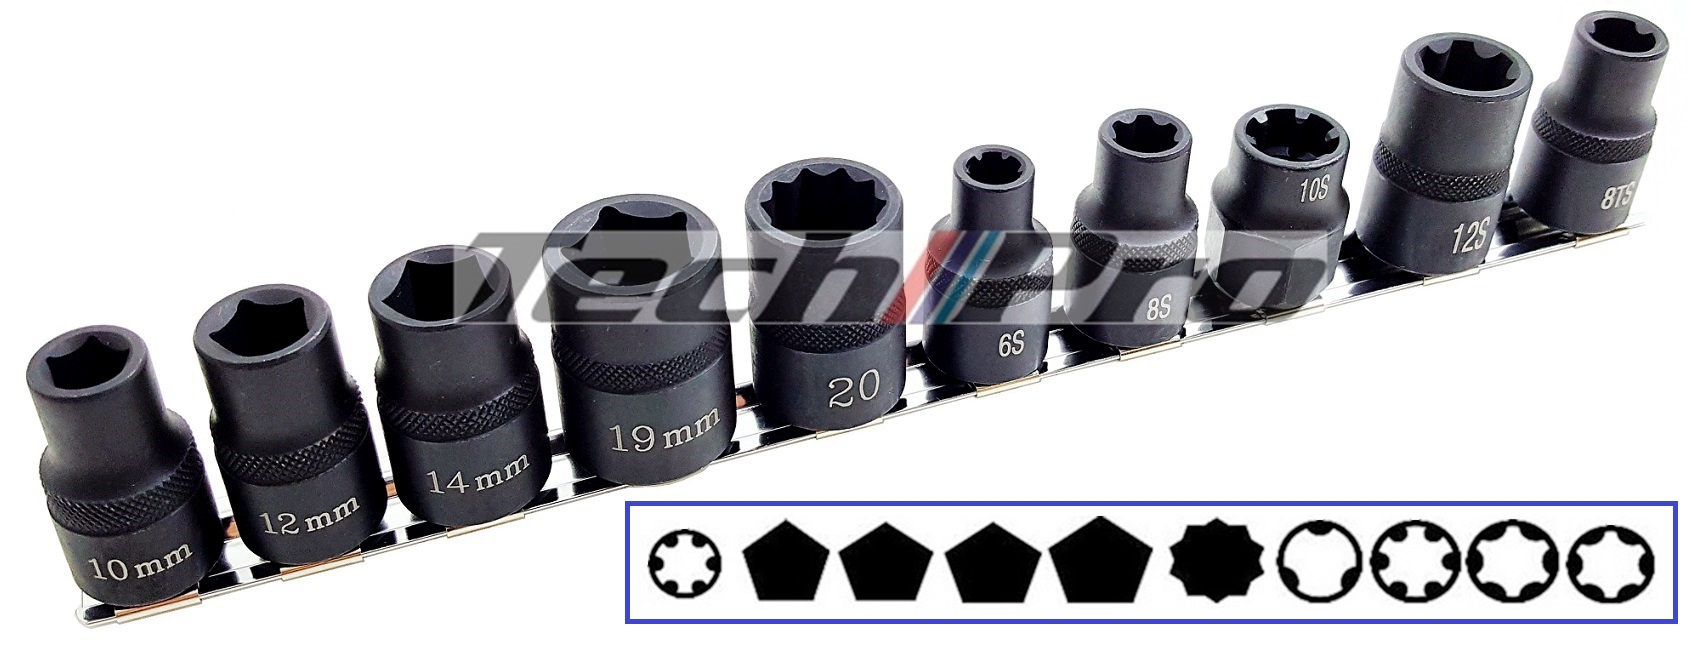 SK-053 Automotive Special Socket Set - 10 pcs